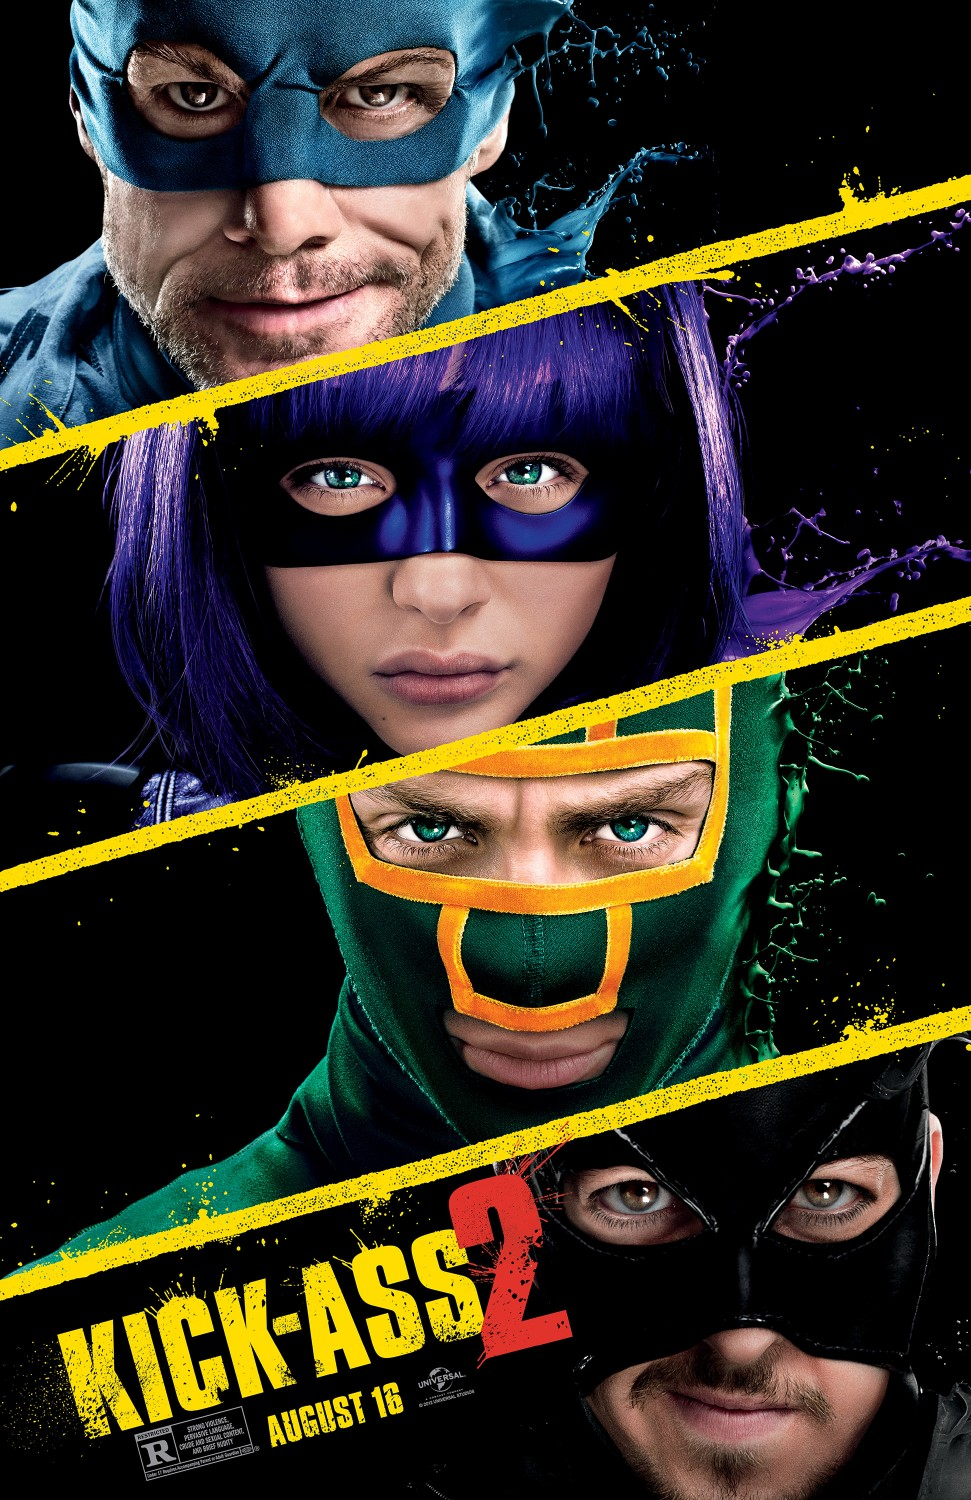 kick-ass-2-Póster de la Película Kick Ass 2